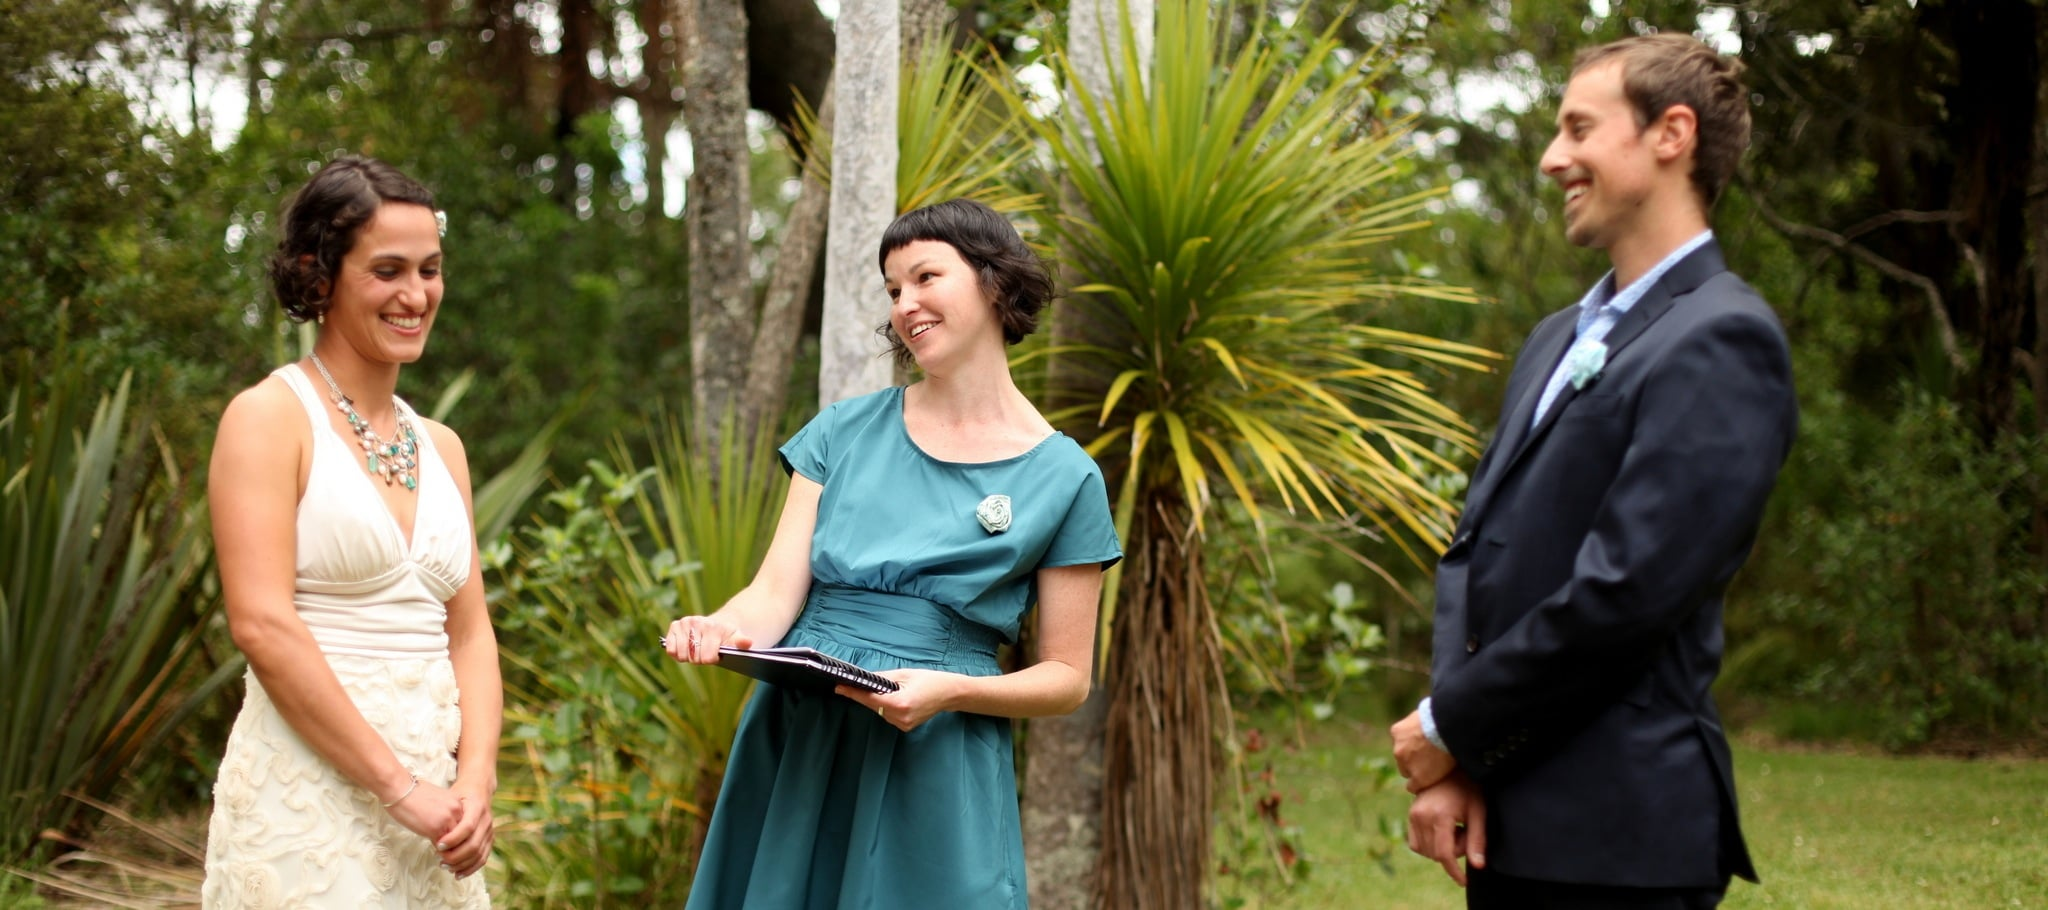 Brough Johnson, a wedding and civil union celebrant based in Auckland, New Zealand.